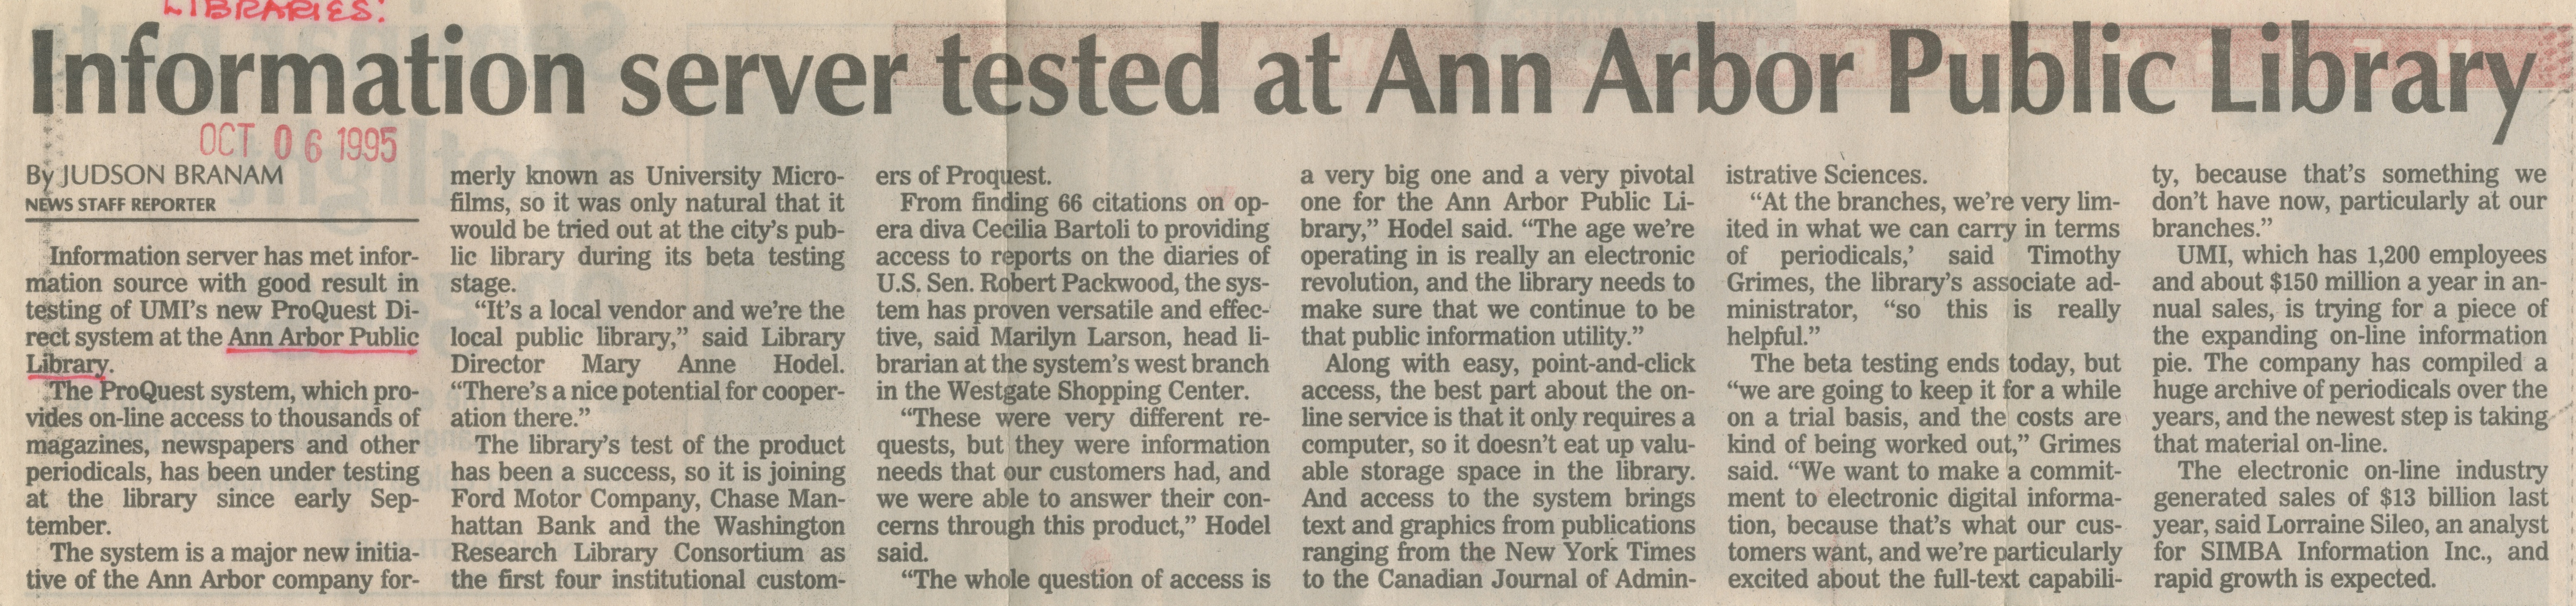 Information Server Tested At Ann Arbor Public Library image